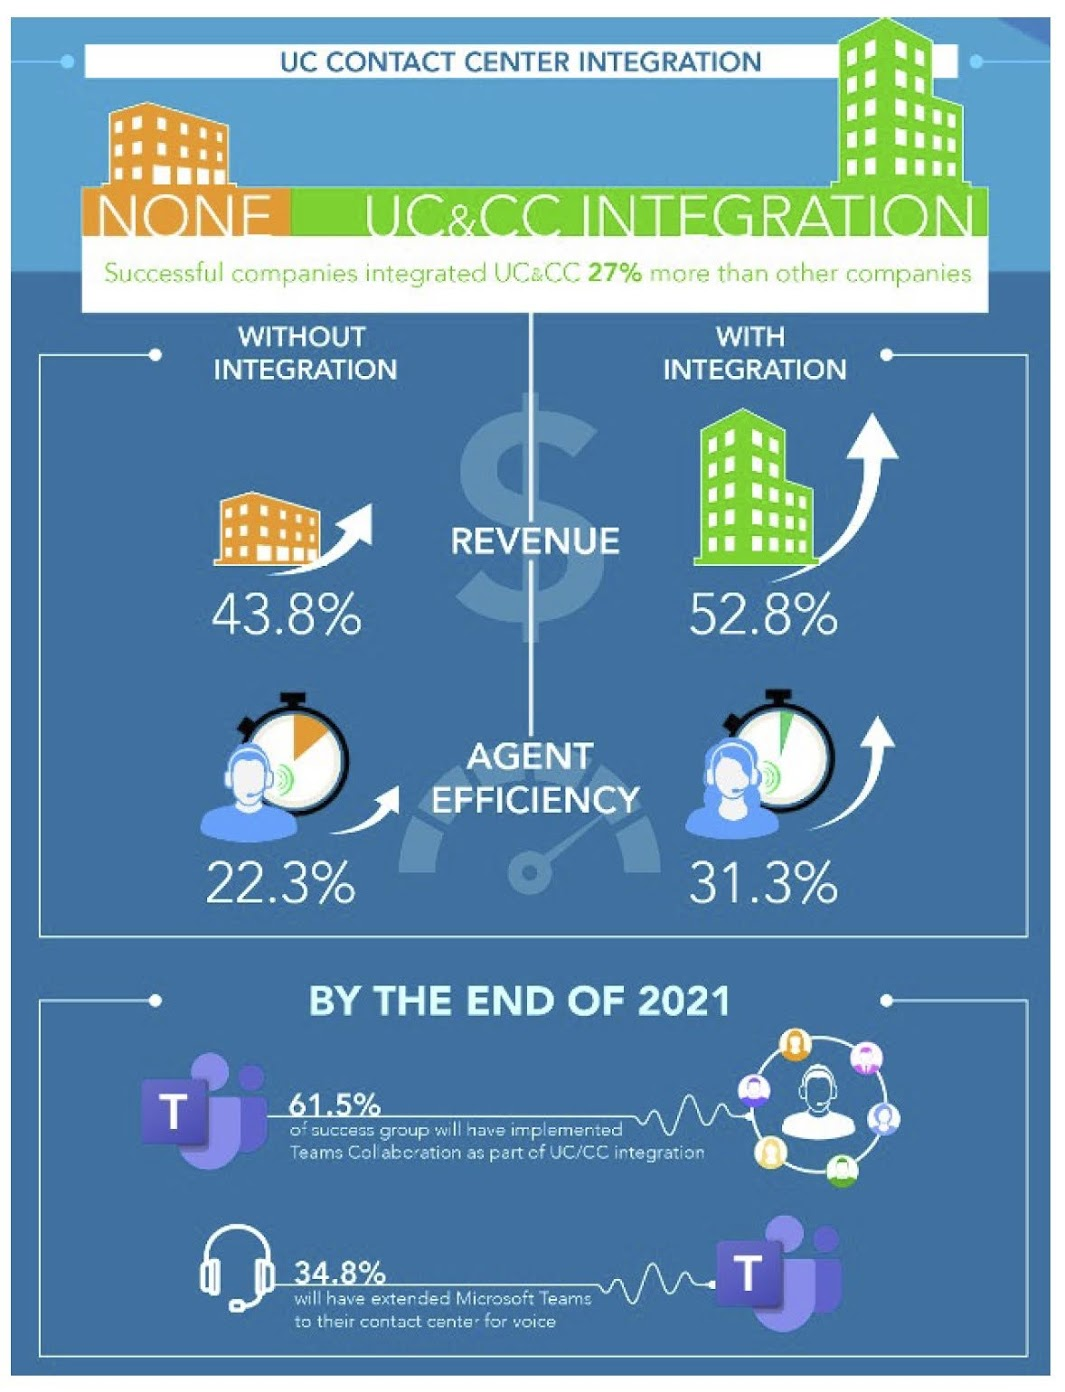 Metrigy found that having an integrated UC and contact center platform increased ratings by 56.7%, compared with only 38.3% when not integrated. Operational costs decreased by 19.7% versus 14.5%.